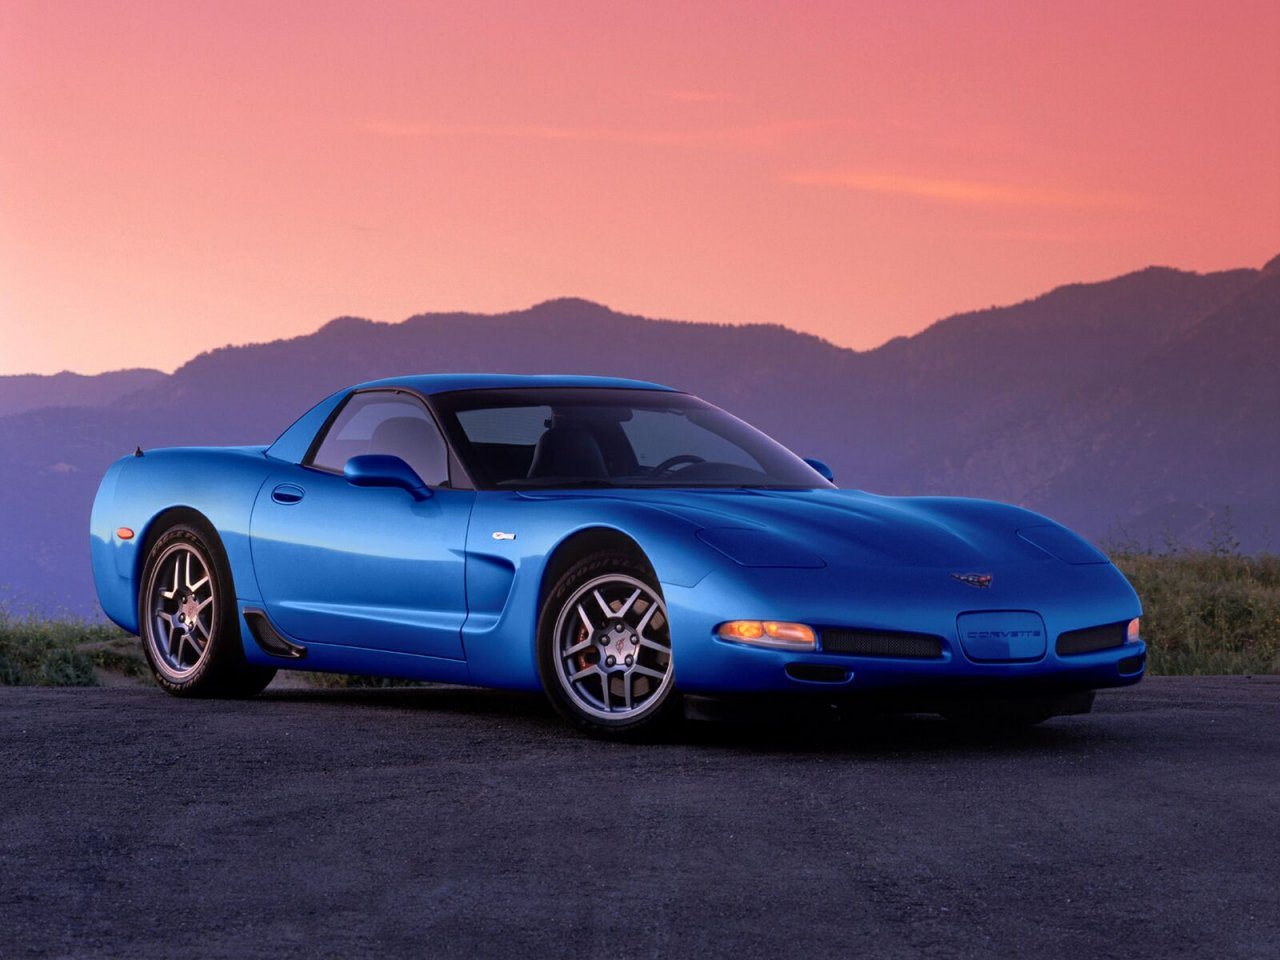 Chevrolet Corvette Coupe 2001